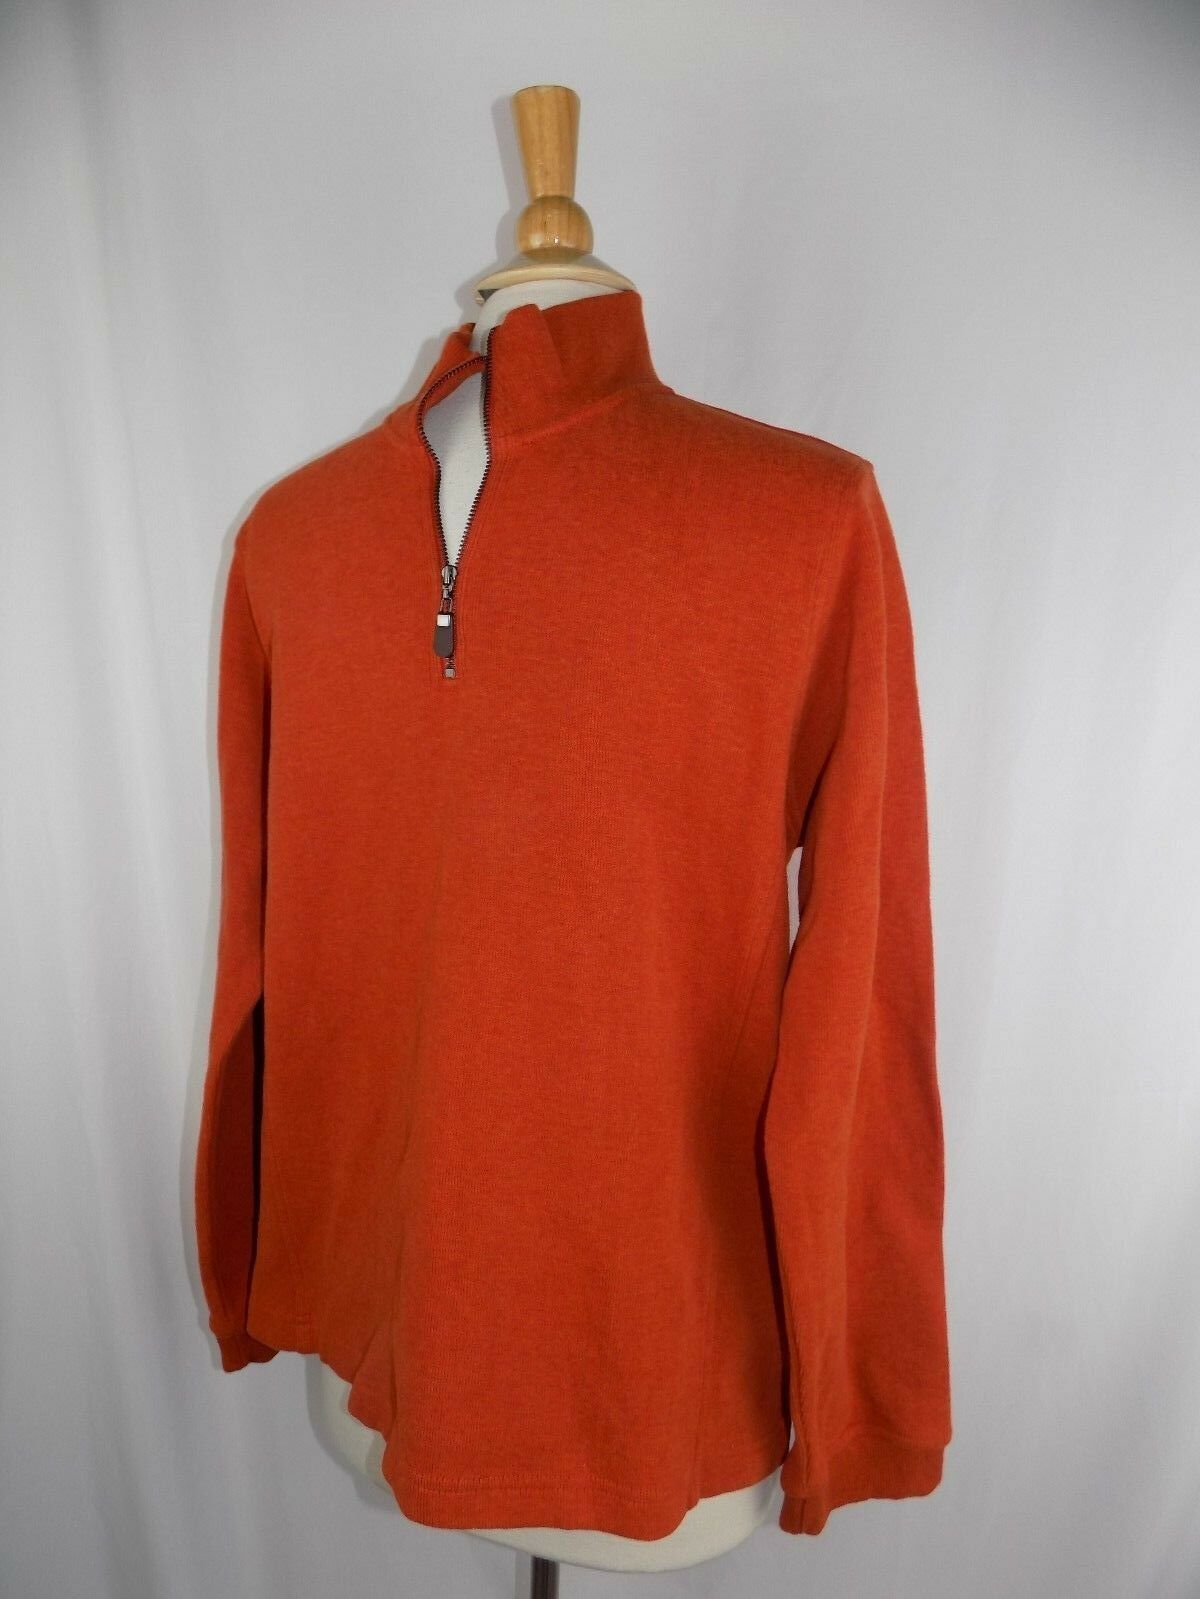 Orvis 1 4 Zip Cotton Sweater Burnt orange Men's Large